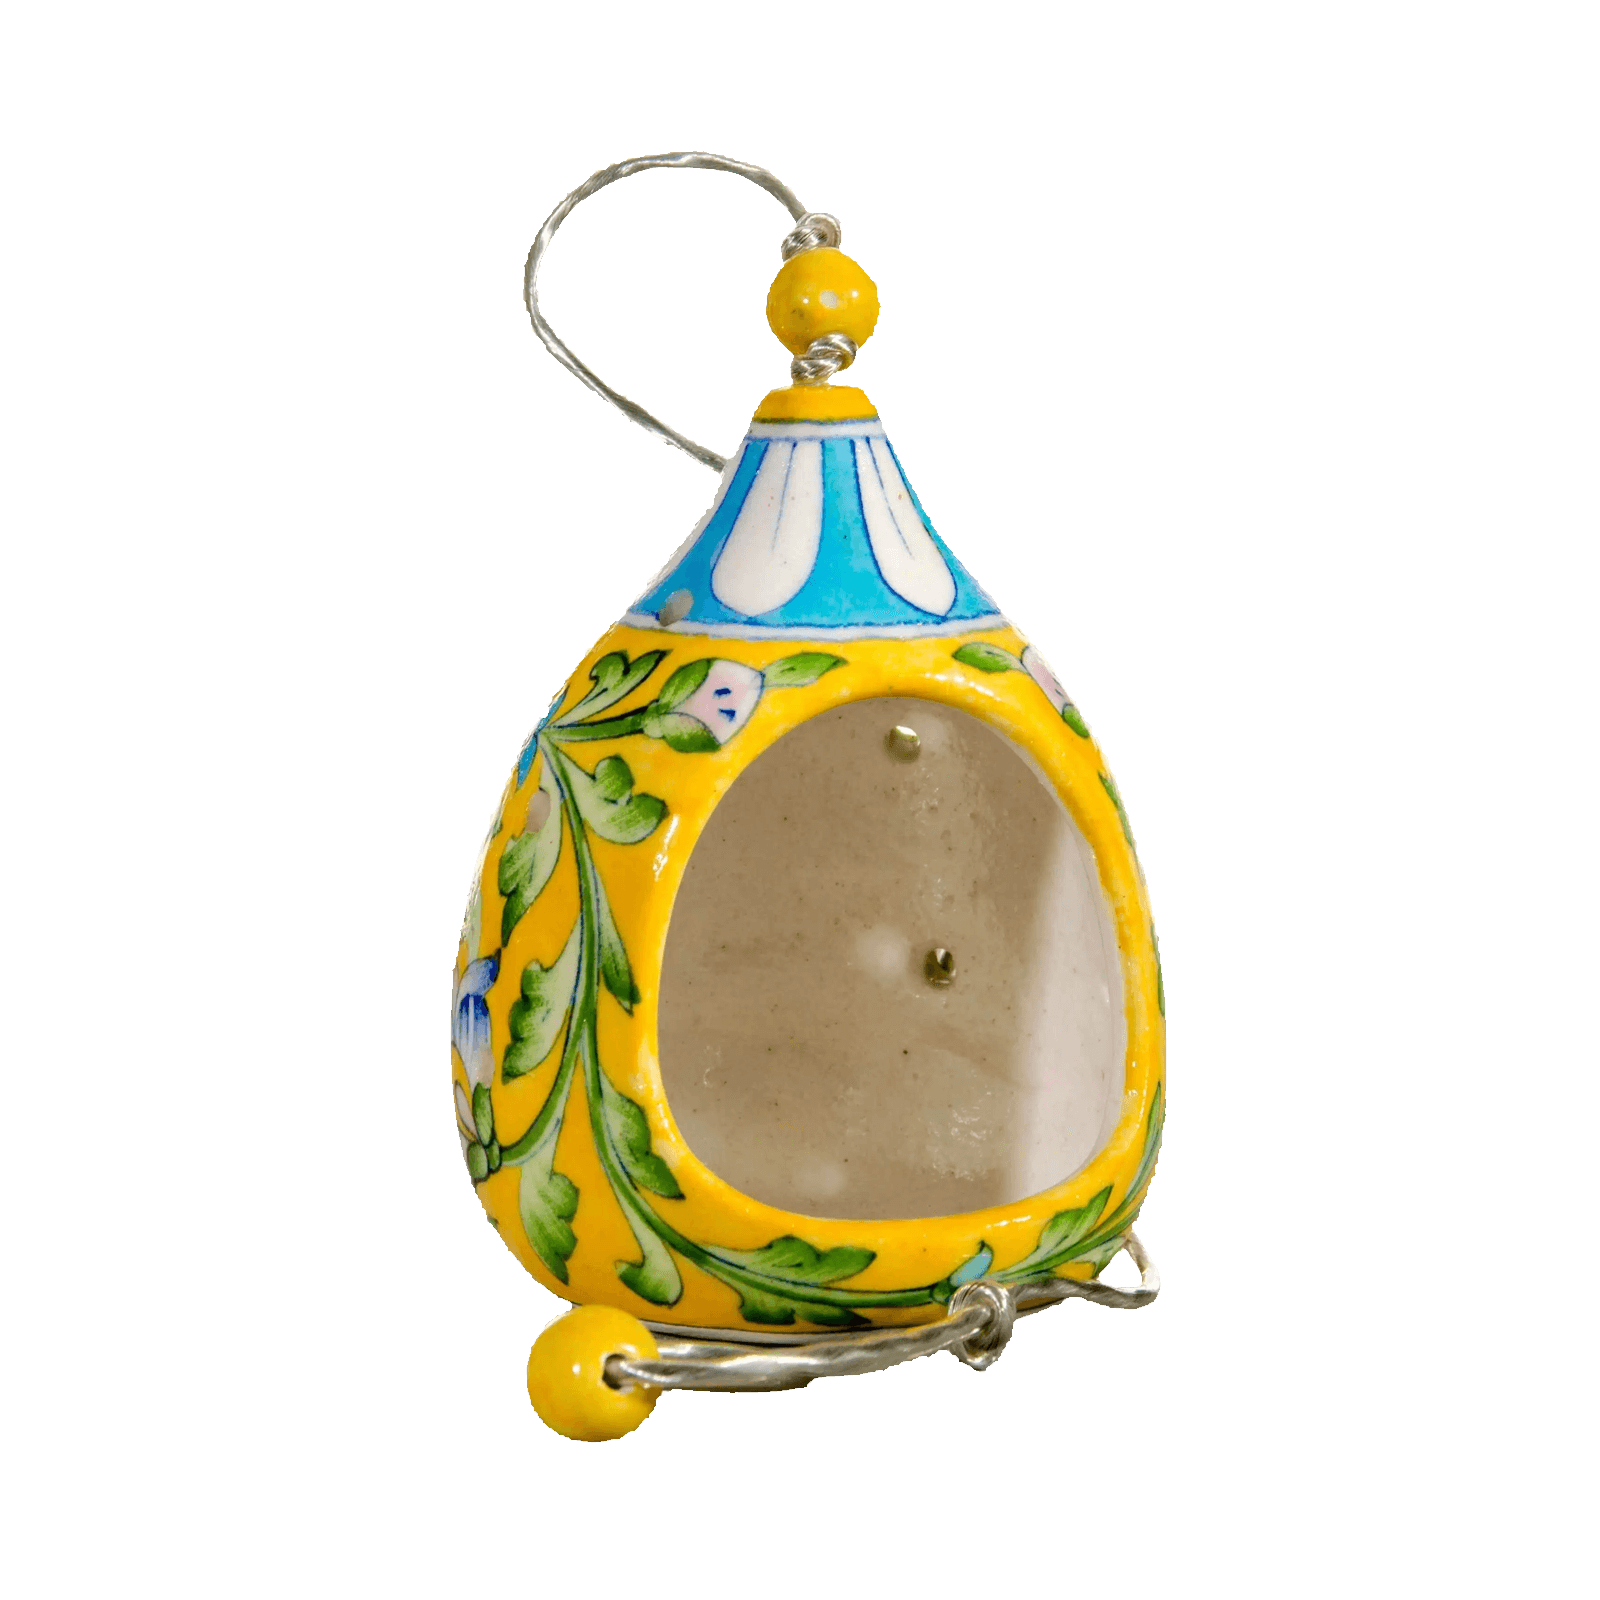 handmade bird feeder, by Ethiqana a shop specialising in eco friendly products, earth friendly products and sustainable products.